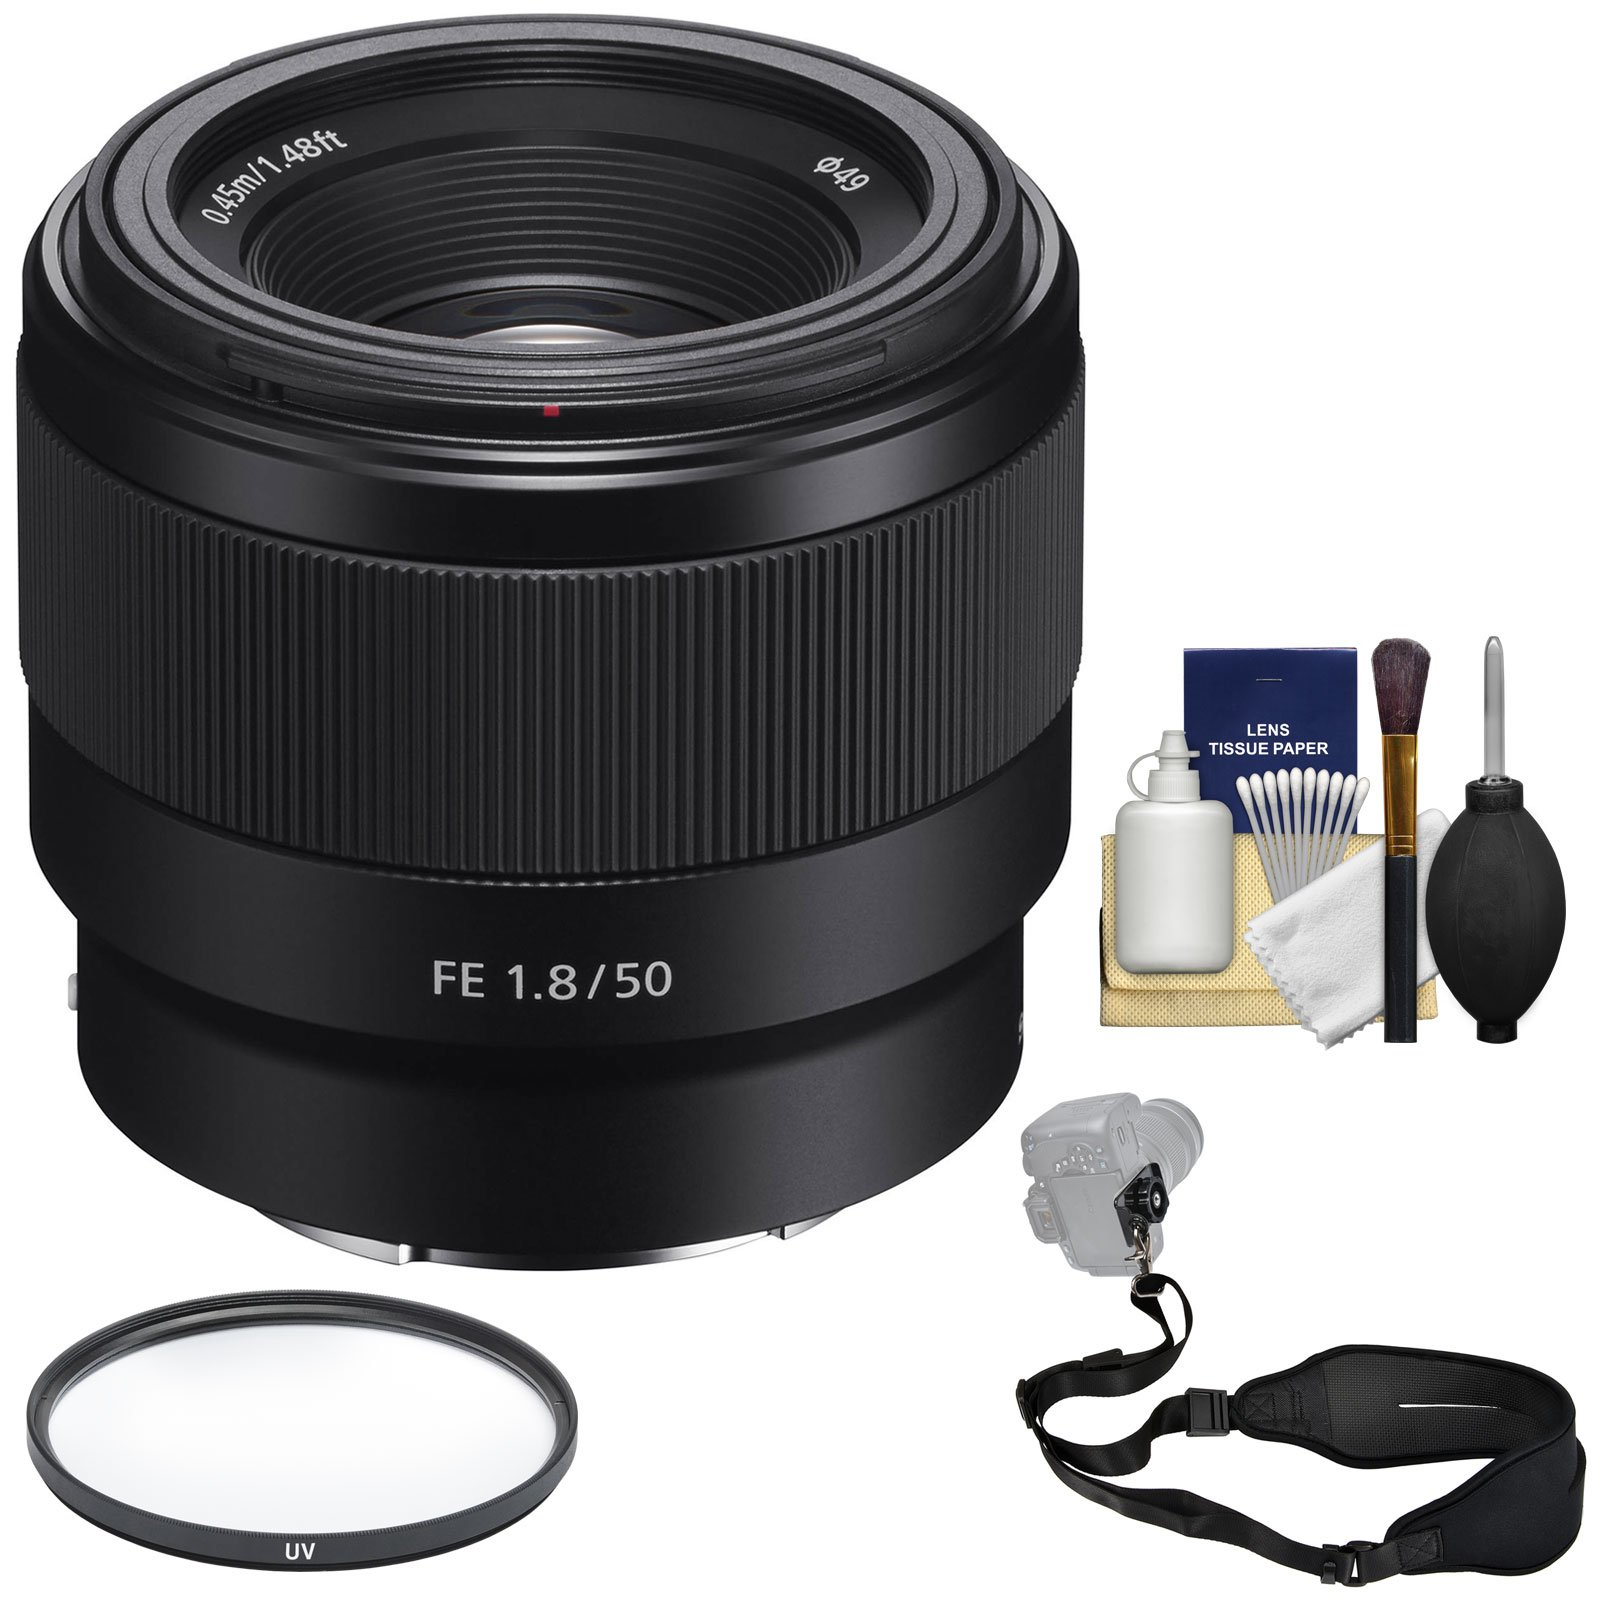 Sony Alpha E-Mount FE 50mm f/1.8 Lens with UV Filter + Sling Strap + Cleaning Kit